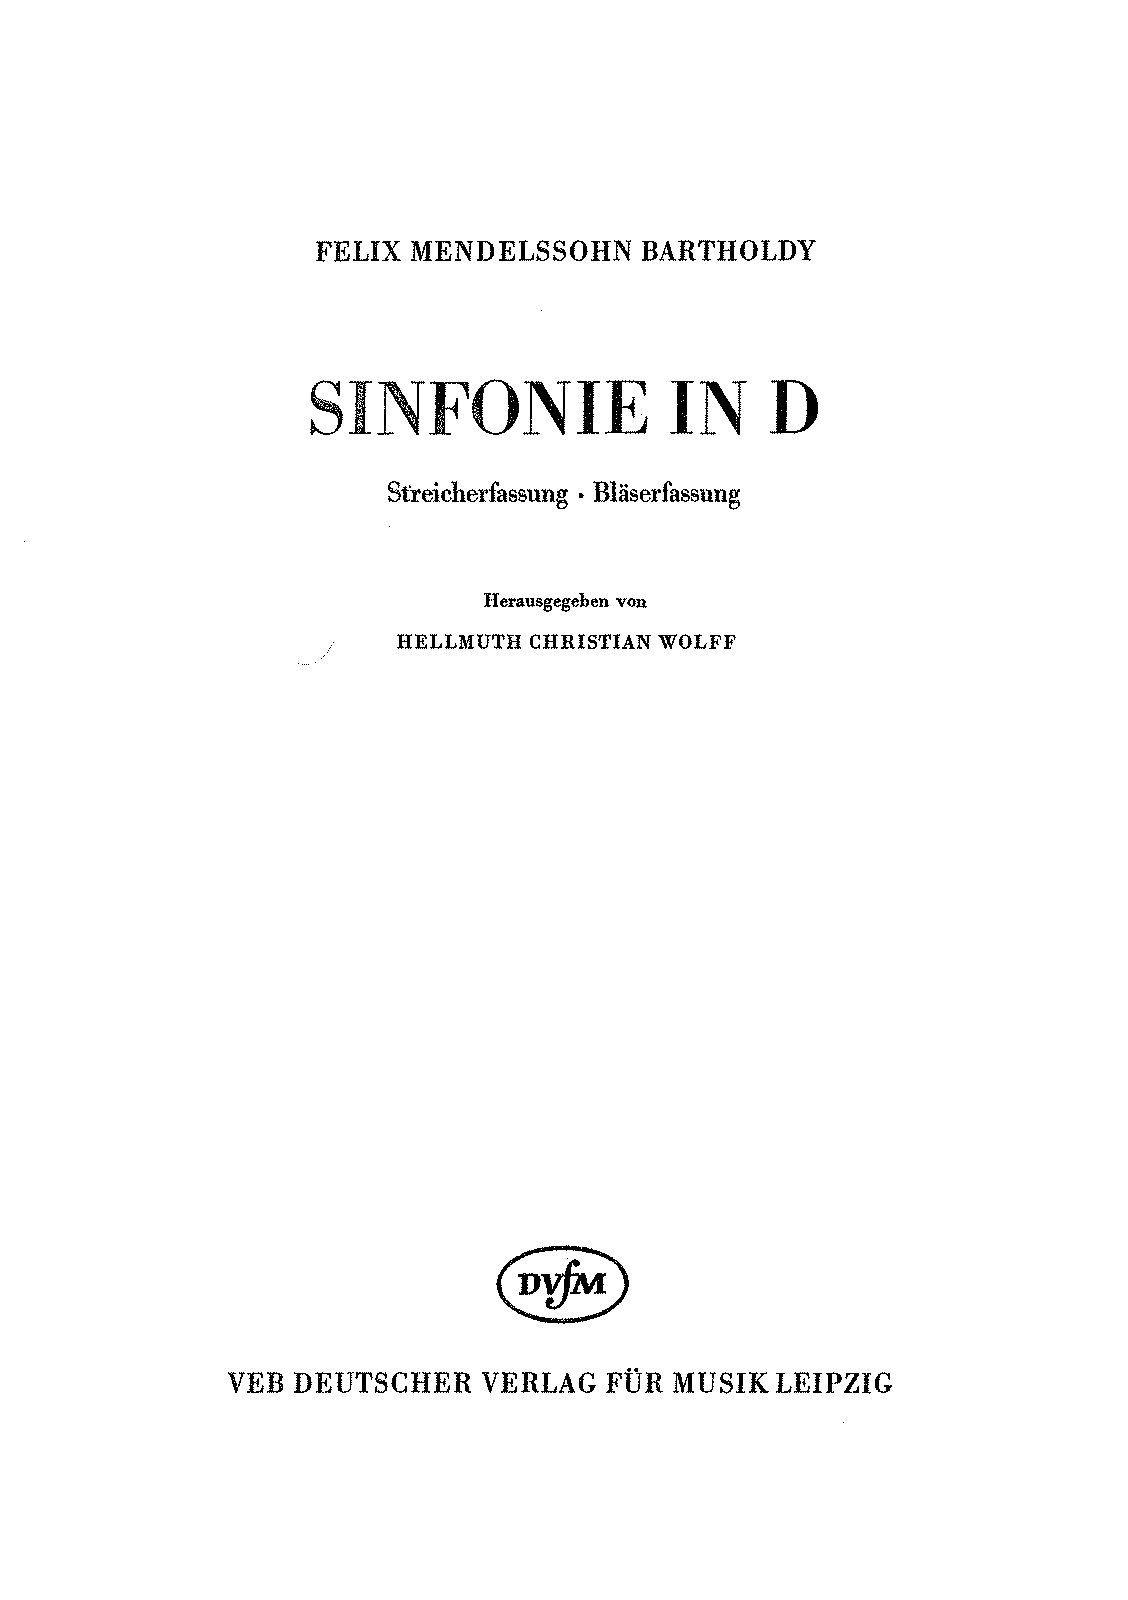 PMLP207414-Mendelssohn, Felix - Sinfonia for String no. 08 in D major (Orchestral Version) MWV N 8.pdf